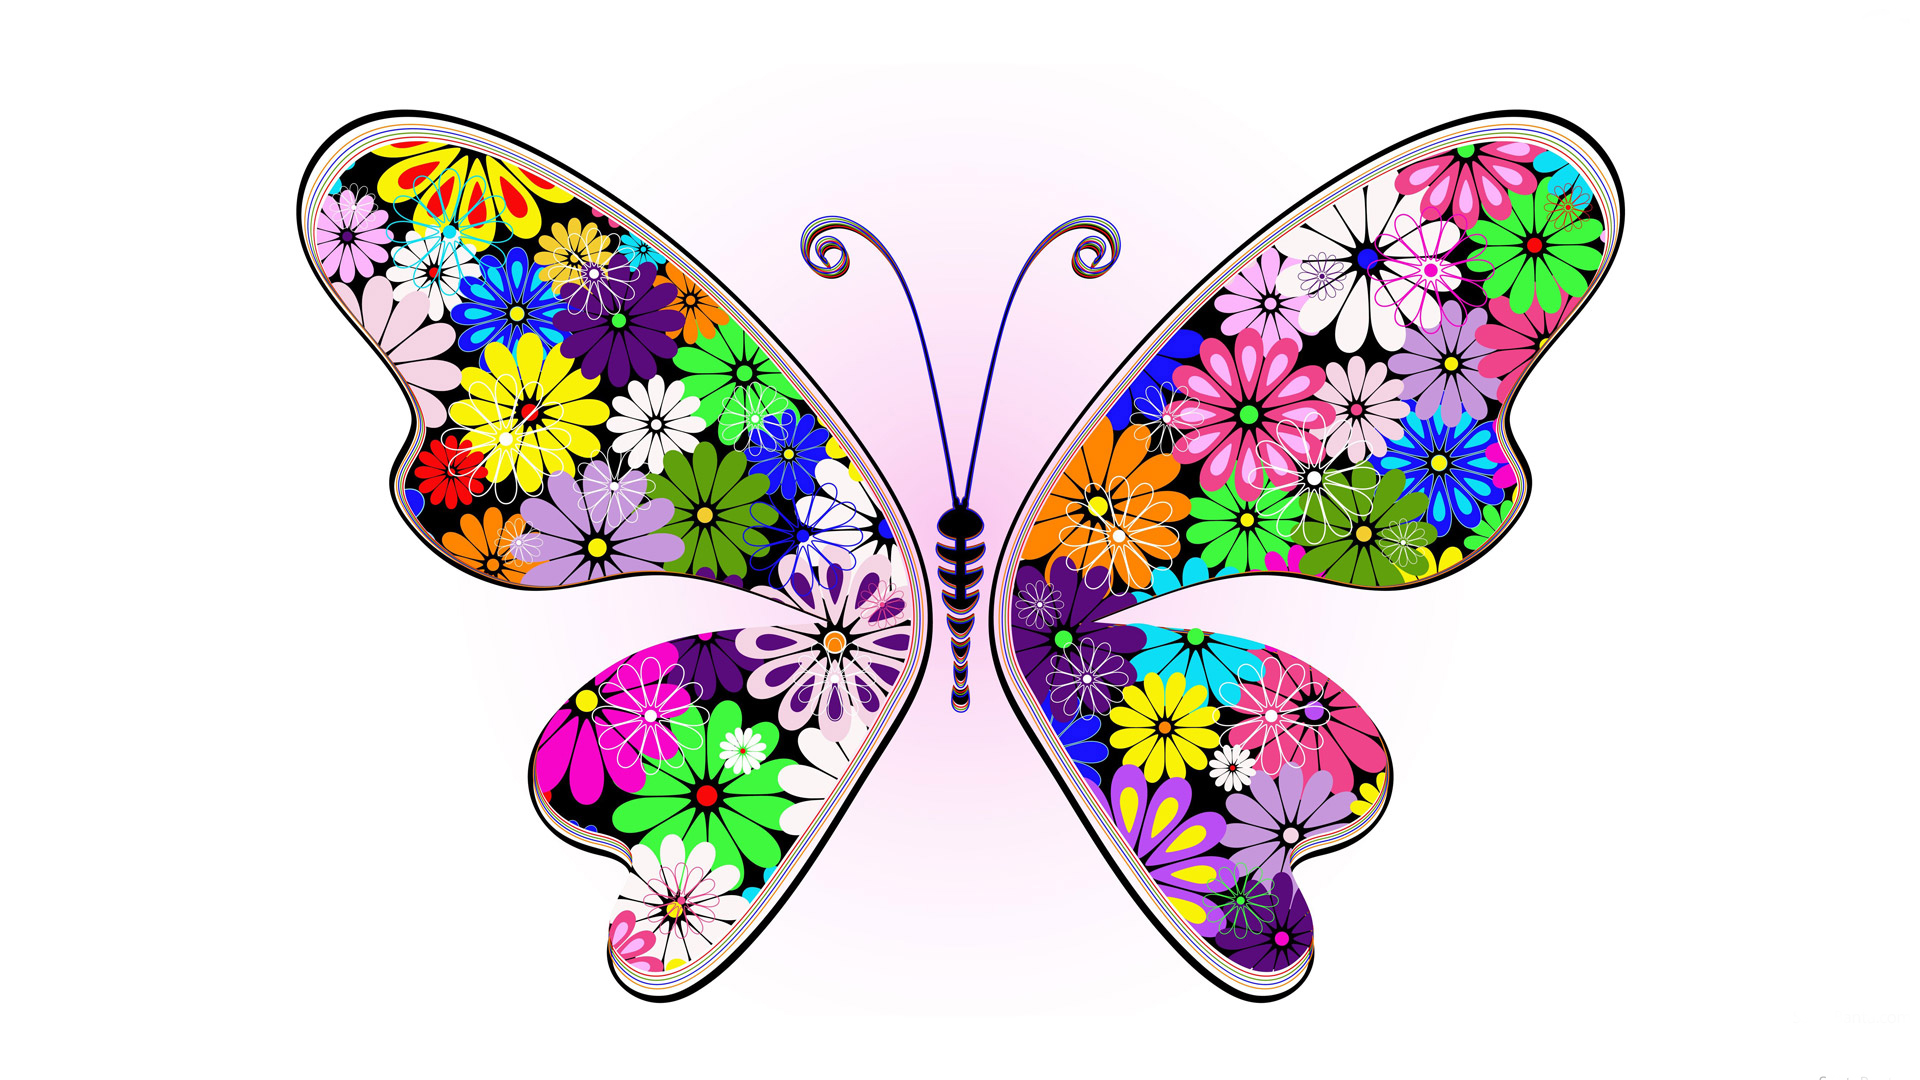 Abstract colorful butterfly hd images Only hd wallpapers 1920x1080